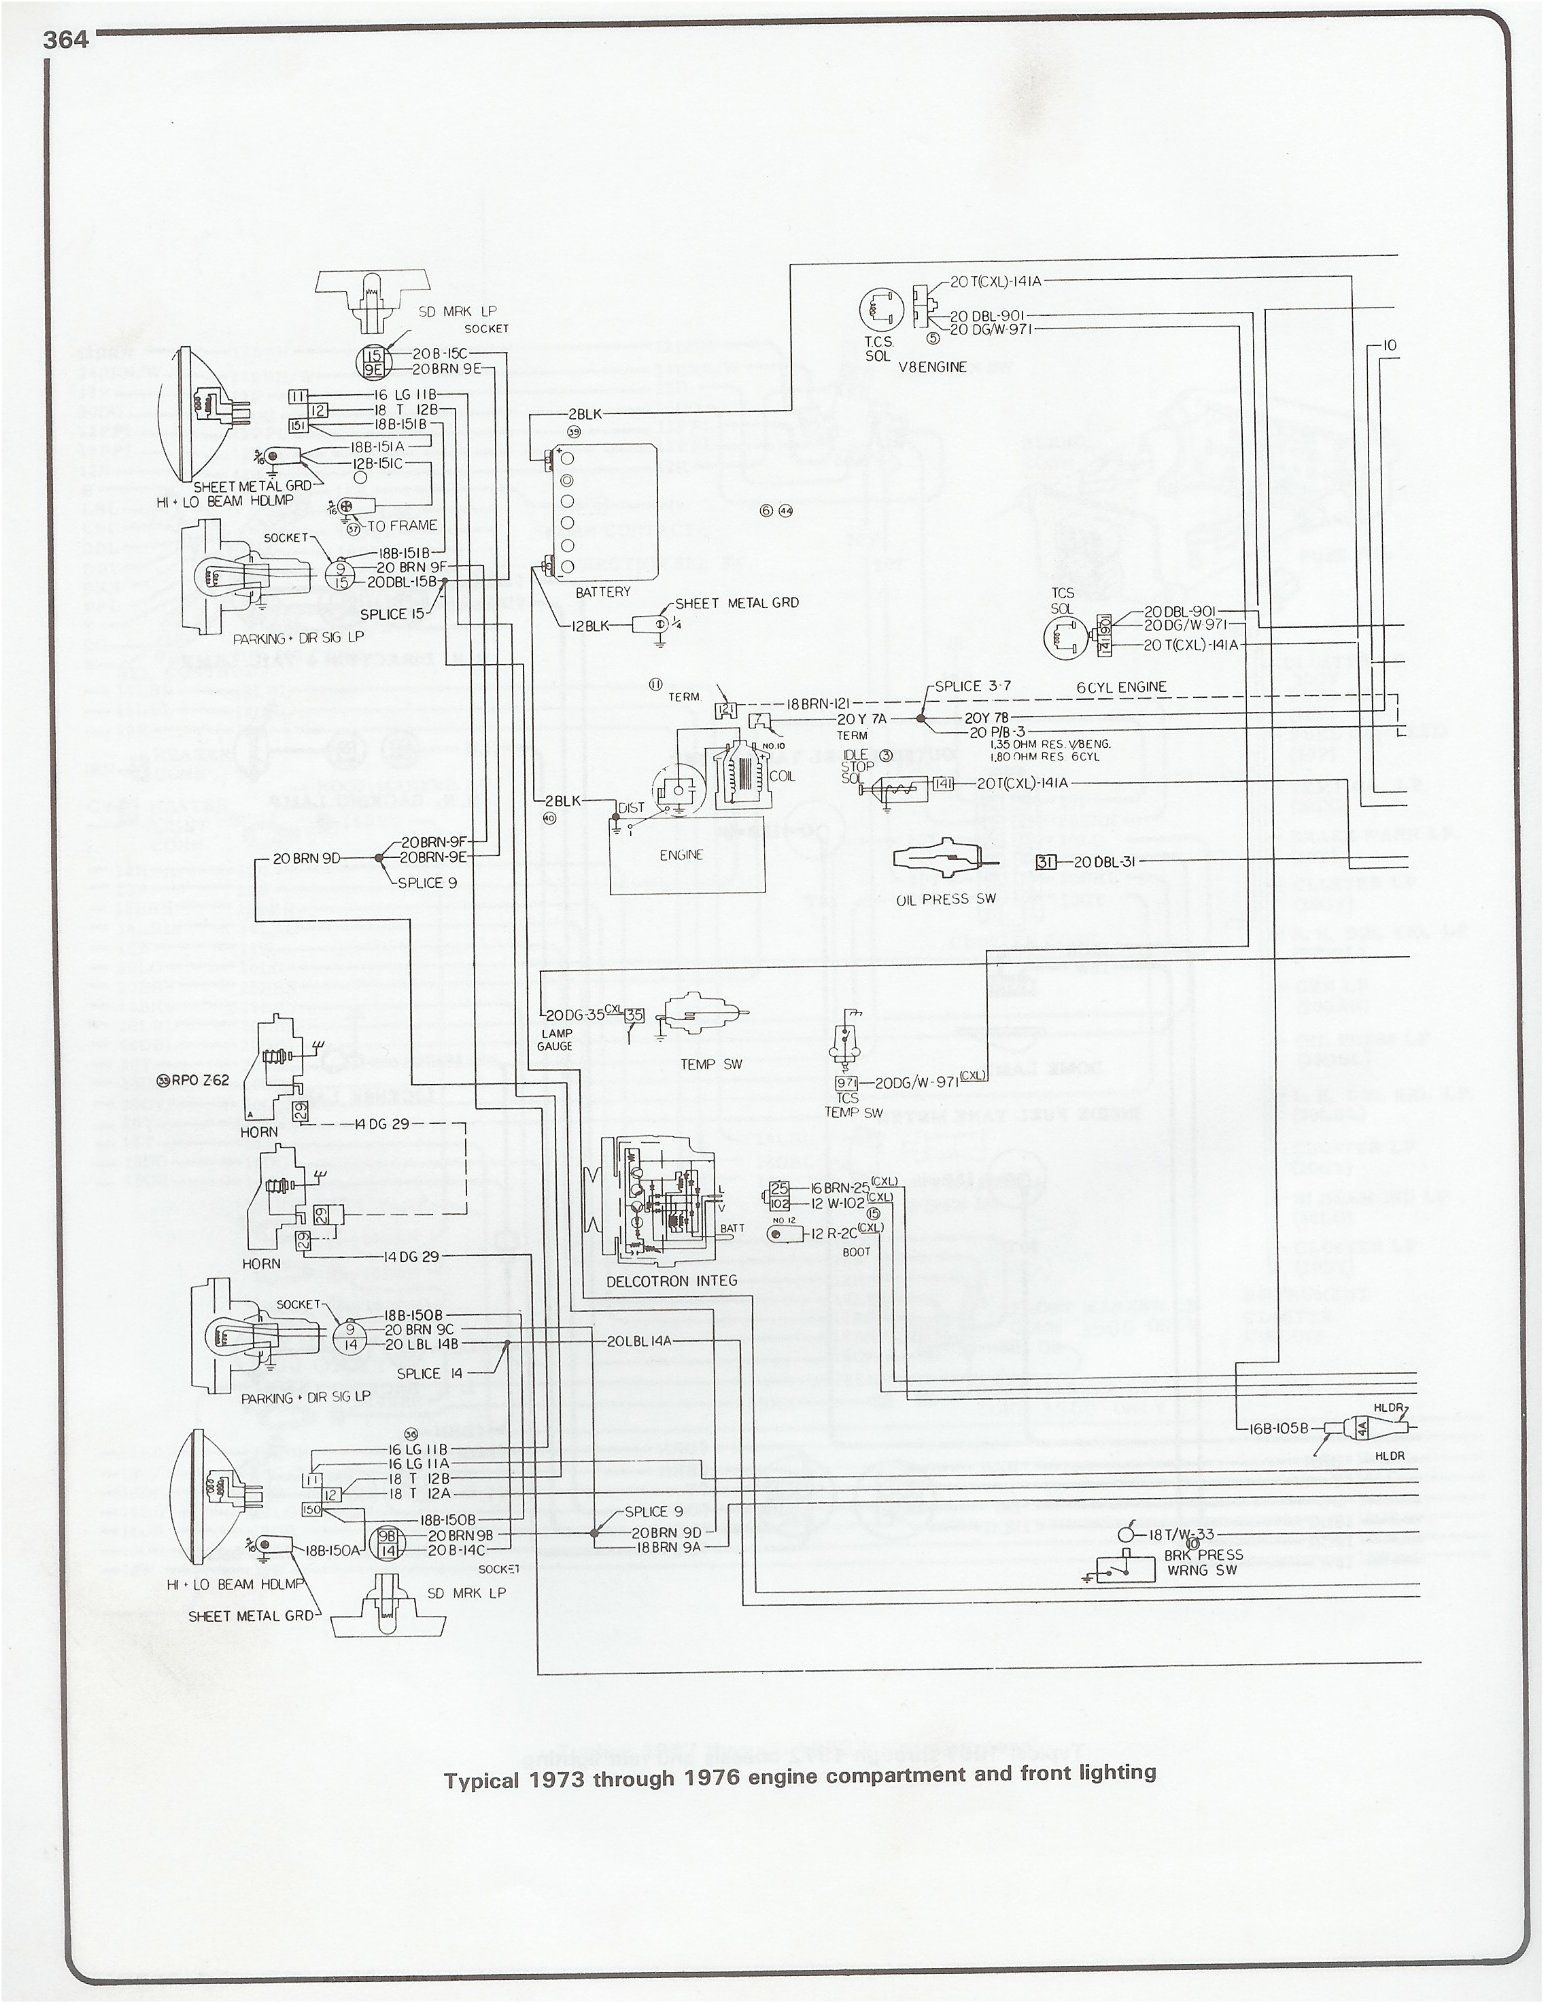 hight resolution of 1975 chevy truck wiring diagram wiring diagram new 1975 c10 pickup wiring diagram data wiring diagram